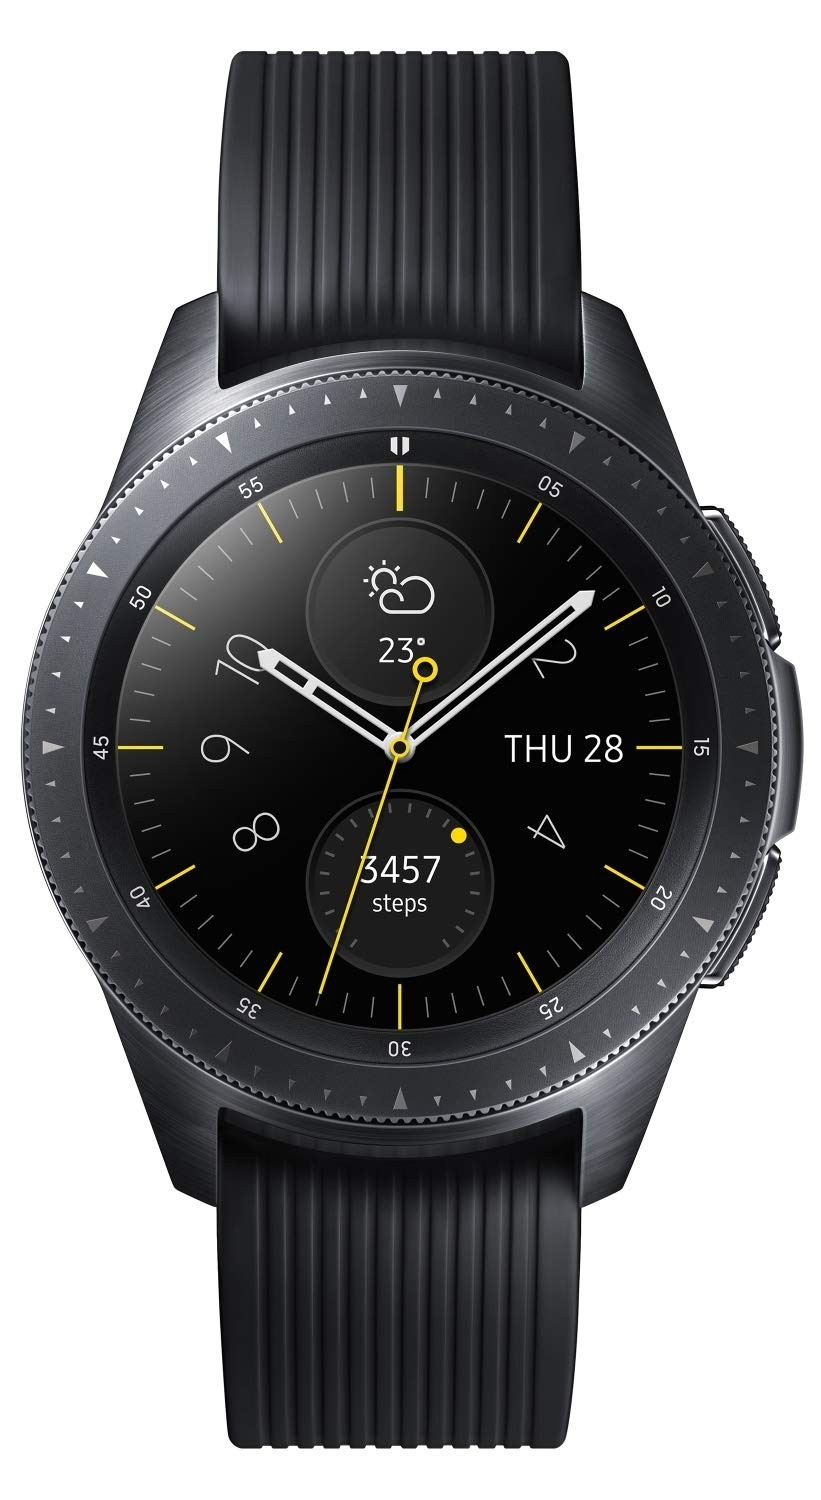 Refurbished laptops & desktops - Samsung Galaxy Watch Smartwatch R810, Midnight Black (SM-R810NZKAINU)